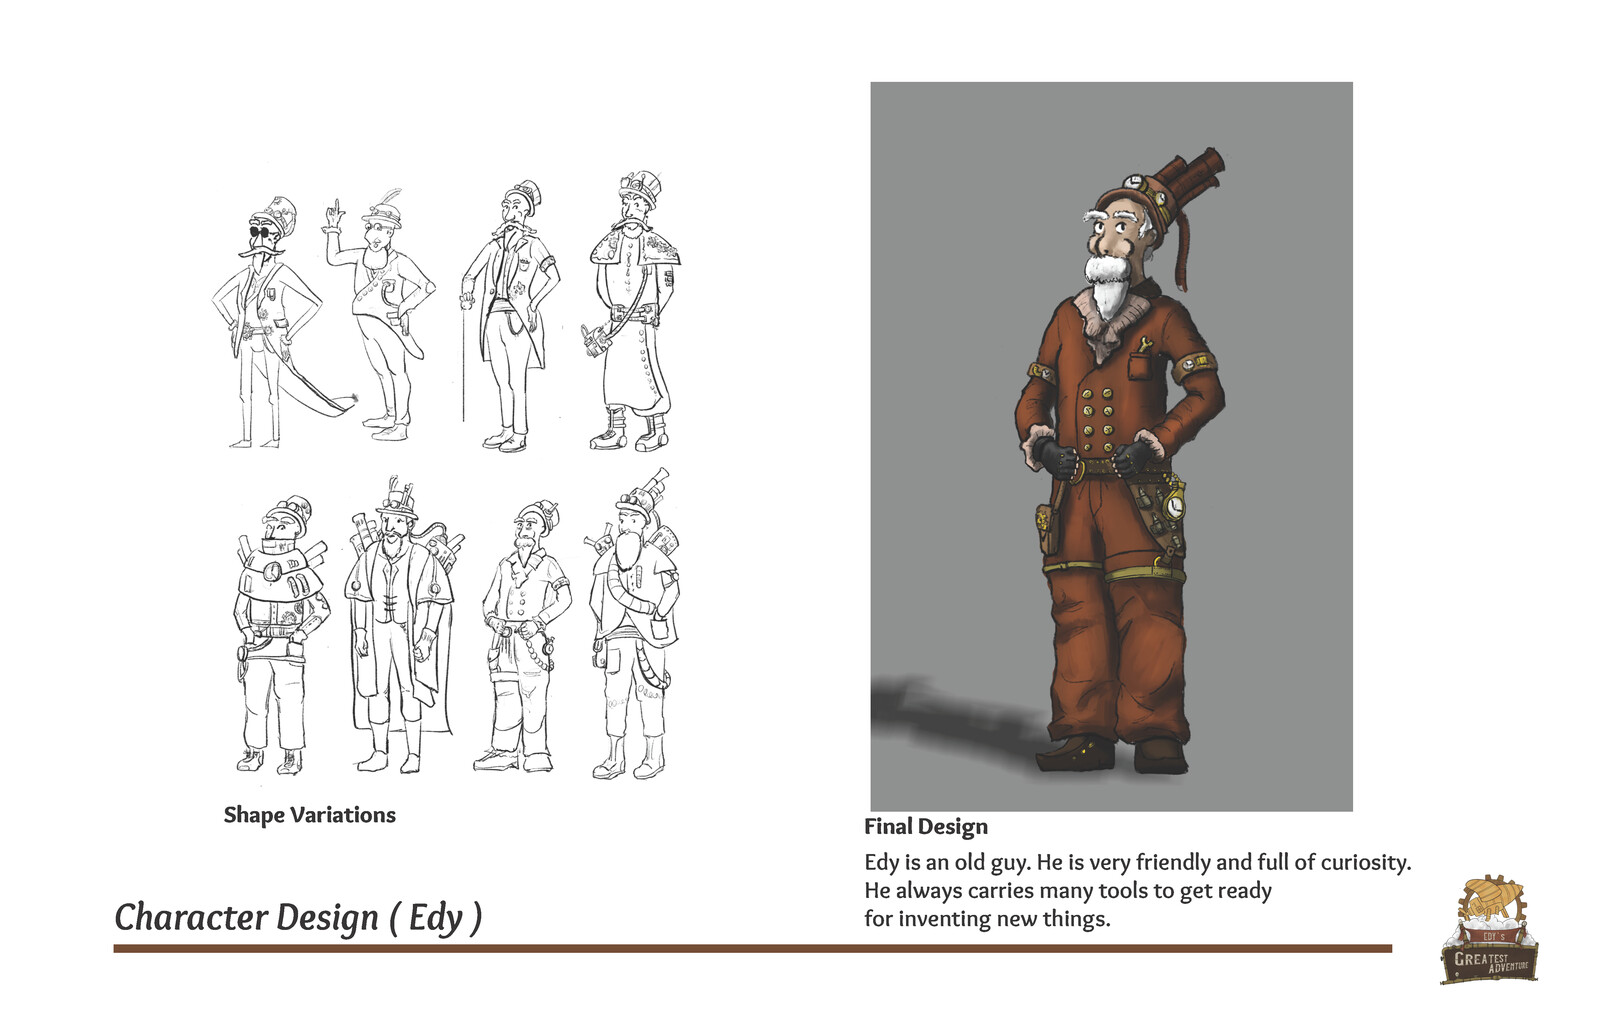 Character Design (Edy)